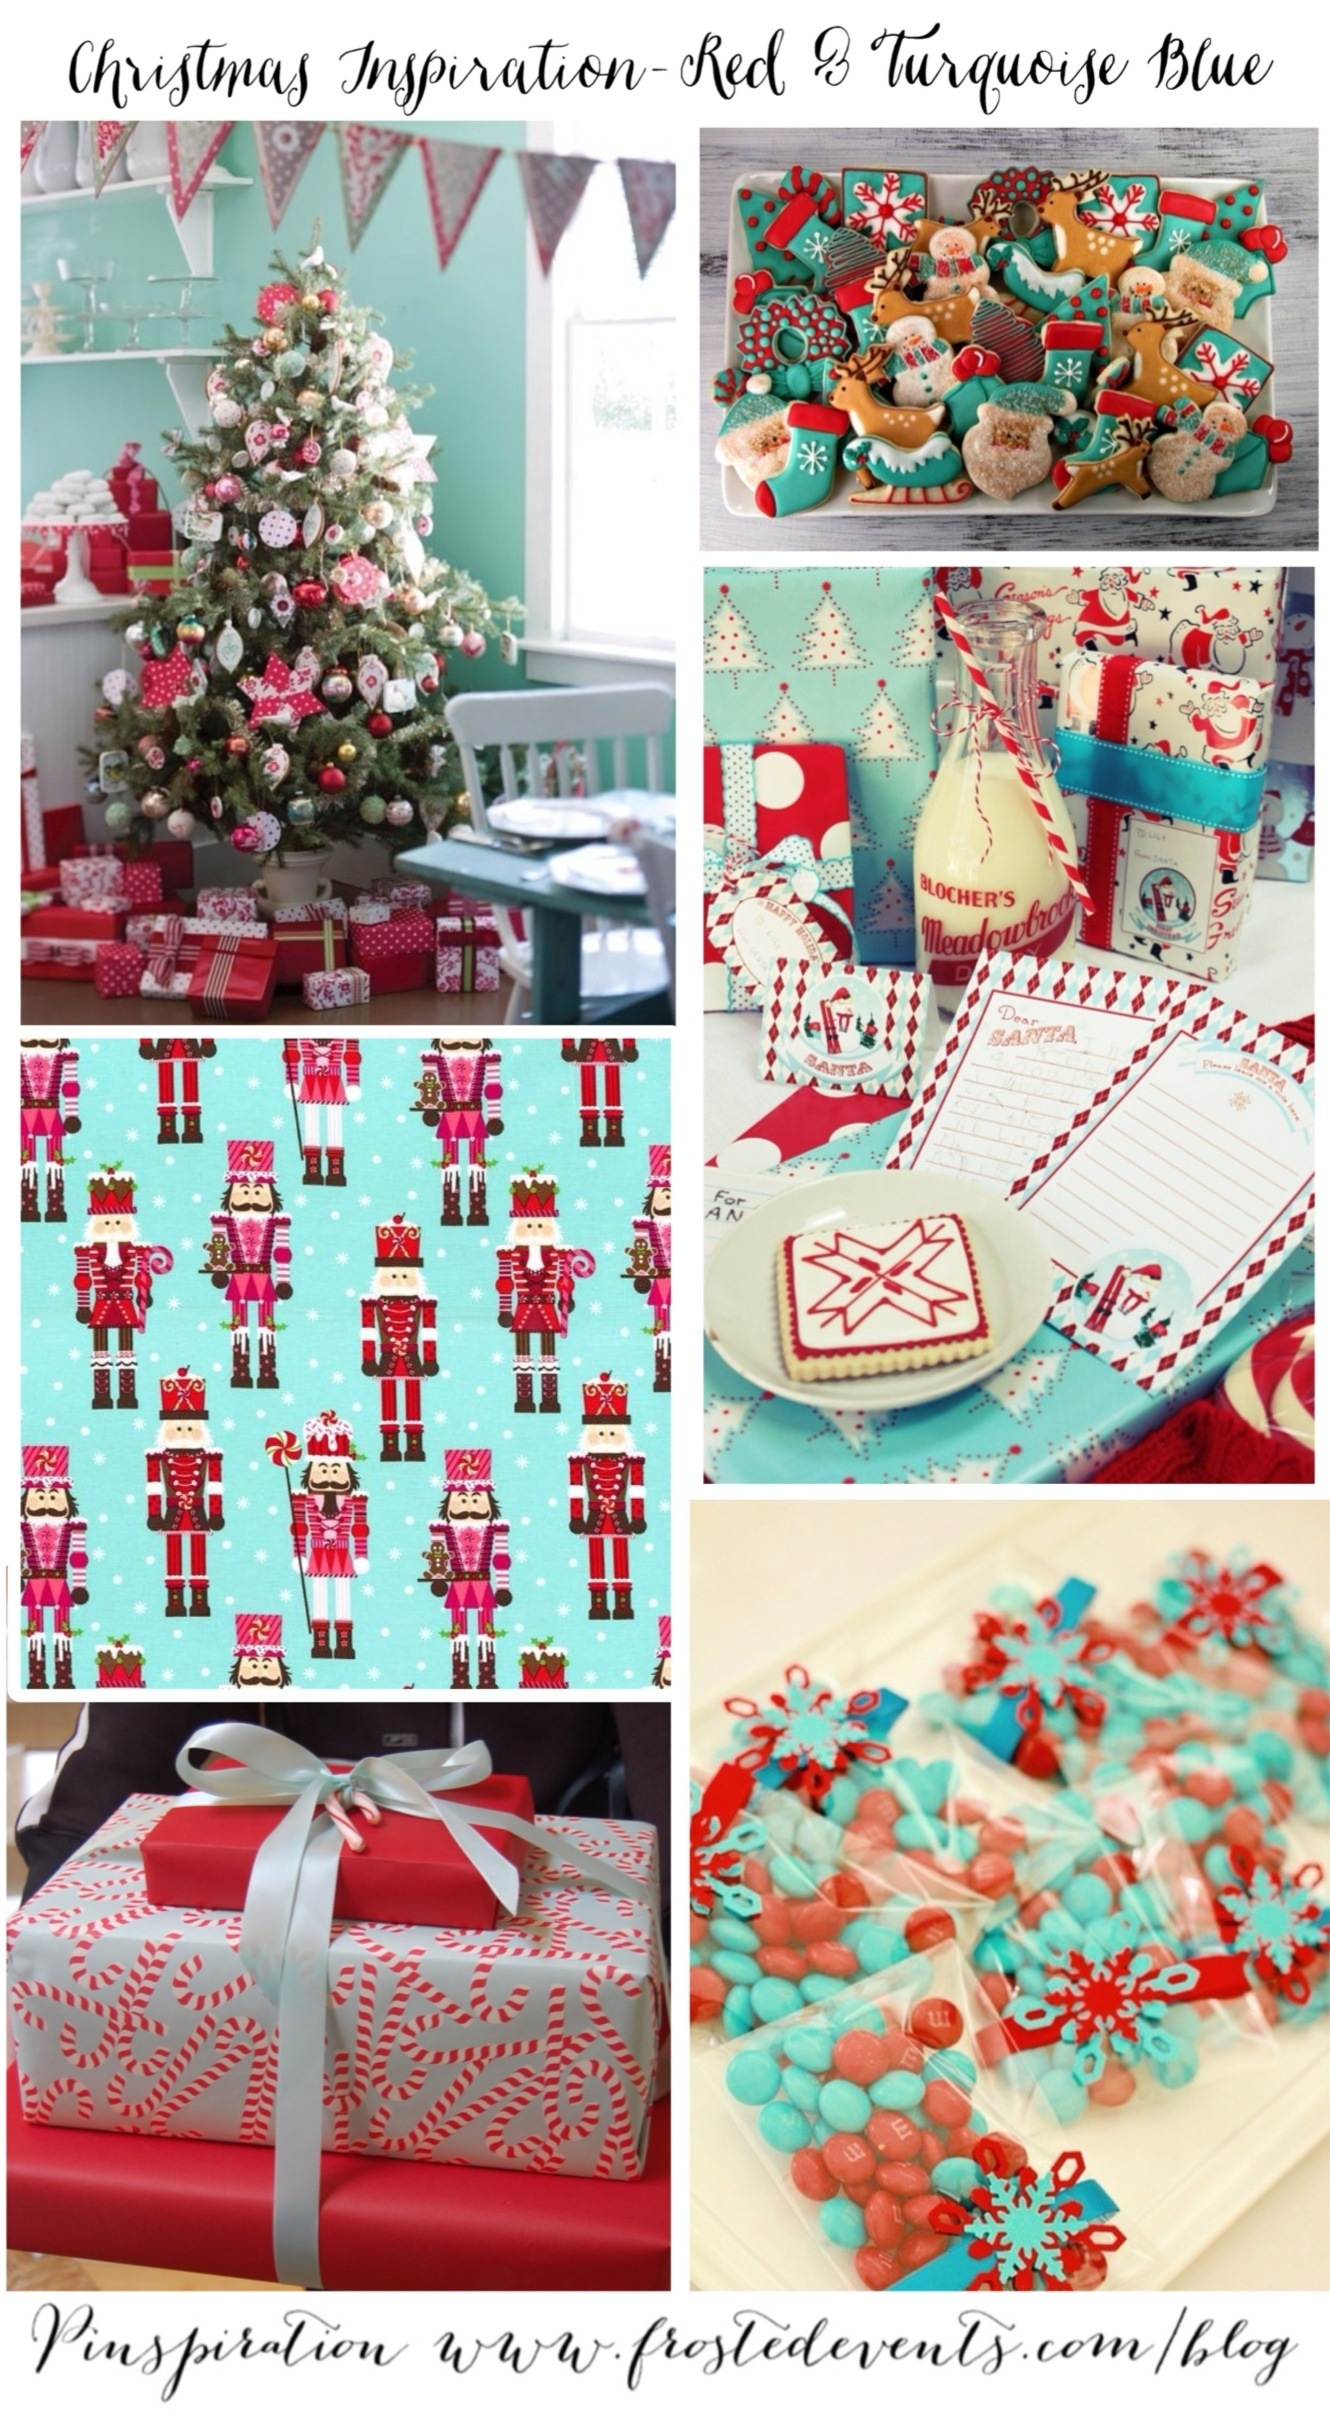 Christmas Inspiration- Red & Turquoise Blue www.frostedevents.com Holiday Ideas